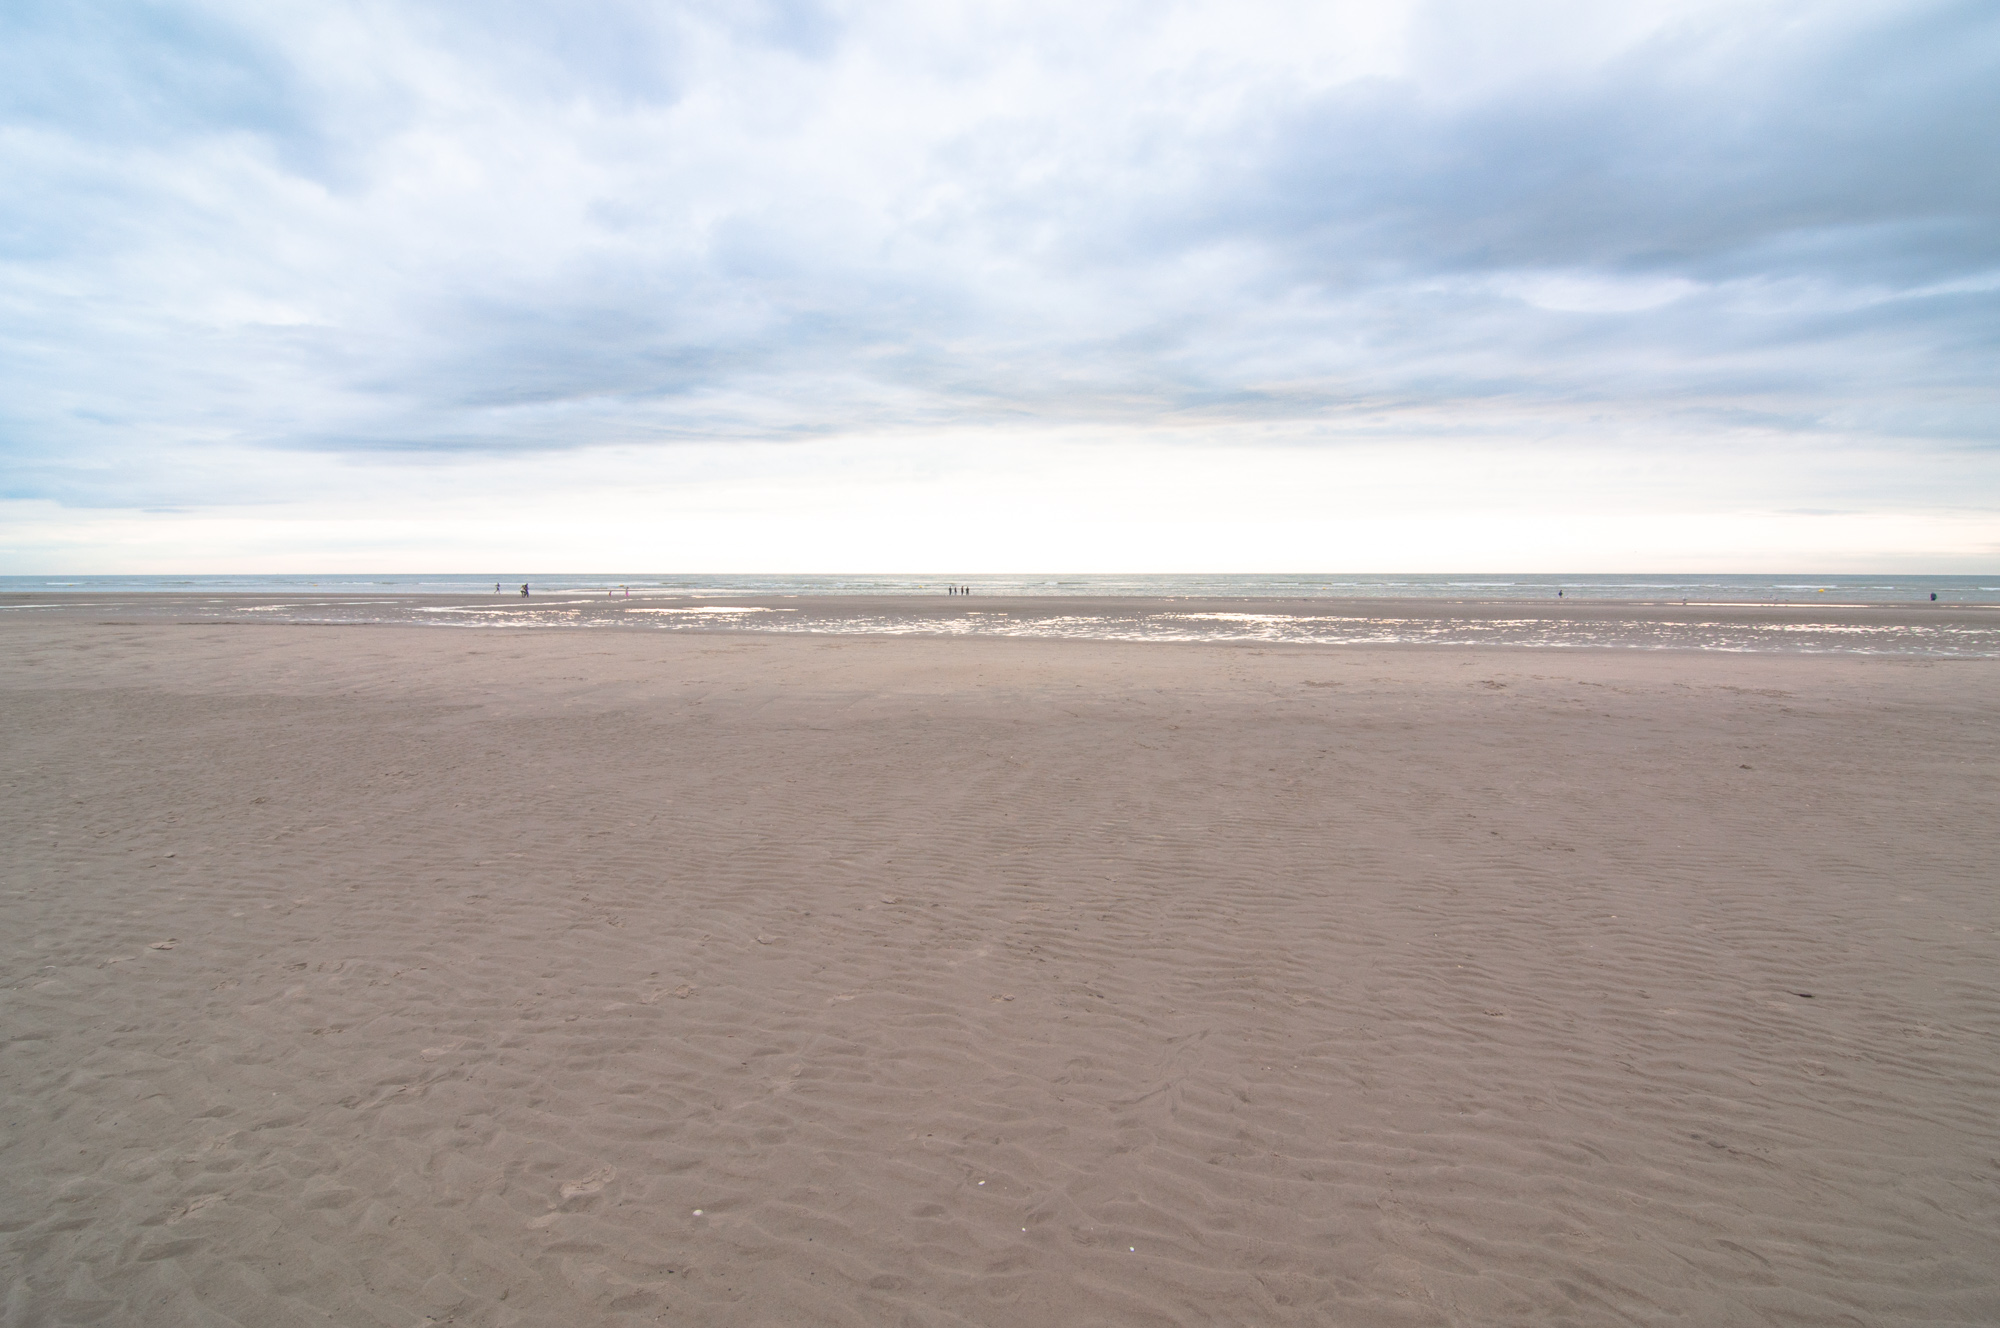 Sand beaches of Le Touquet (at 55 min.)